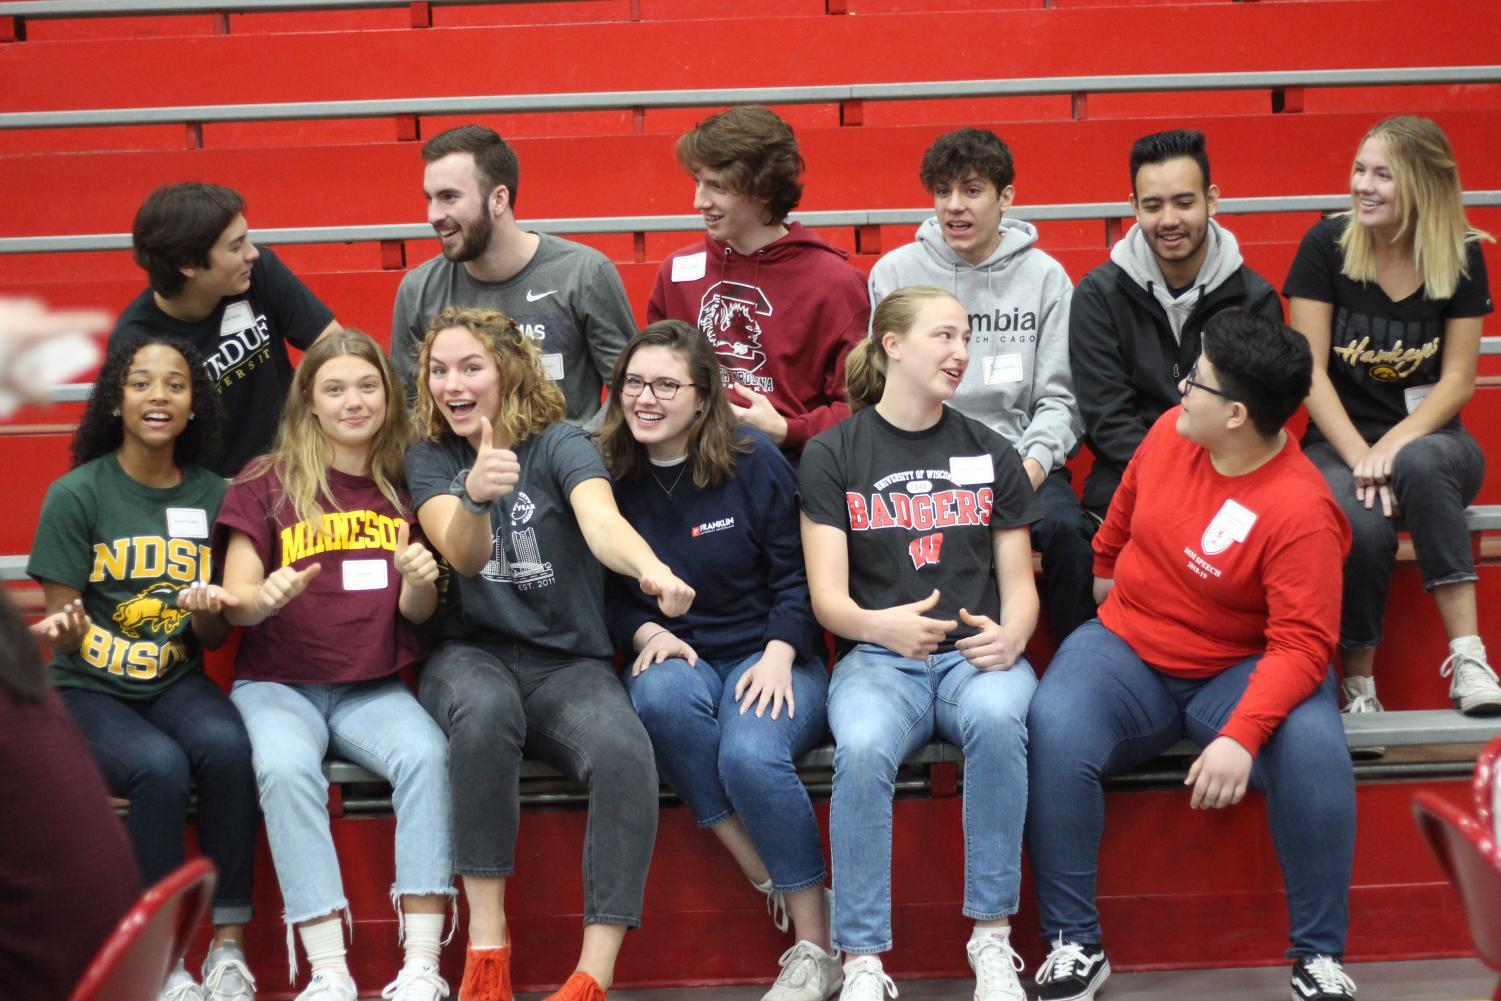 The Knight Errant's Tremendous 12 are twelve seniors whose accomplishments, unique hobbies, and exceptional character set them apart as tremendous student leaders of the 2019 graduating class.